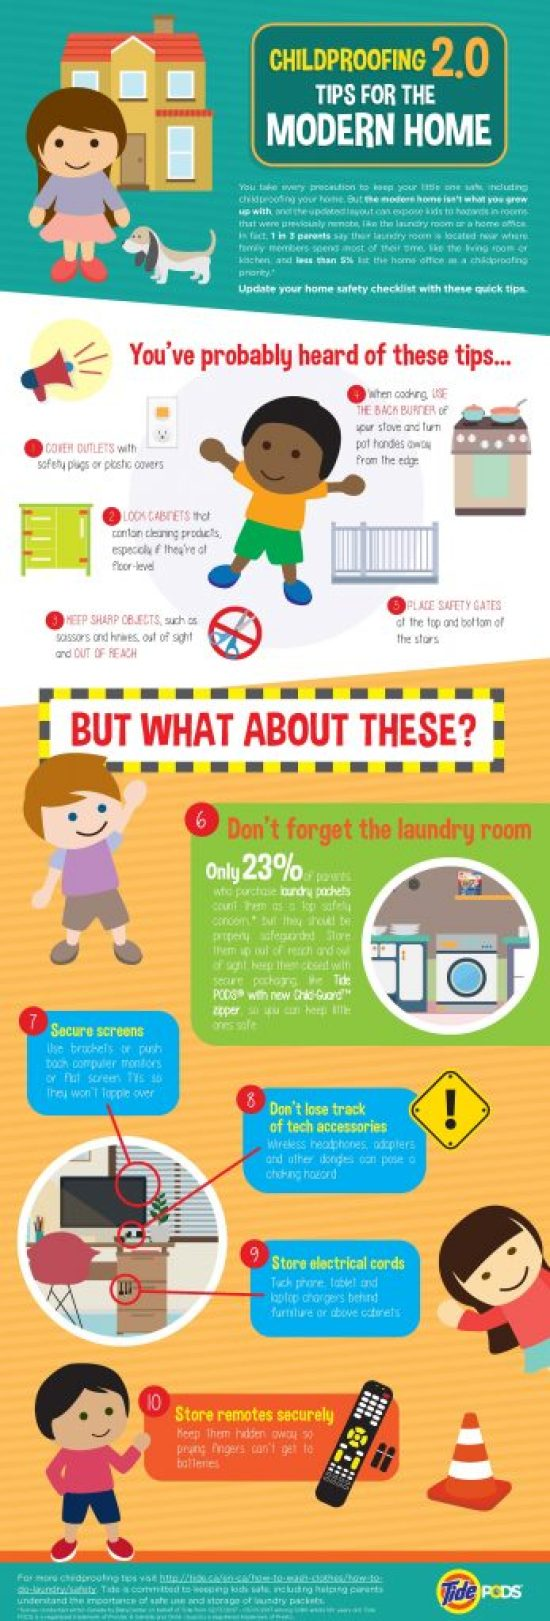 Childproofing 2.0 tips for the modern home Canada